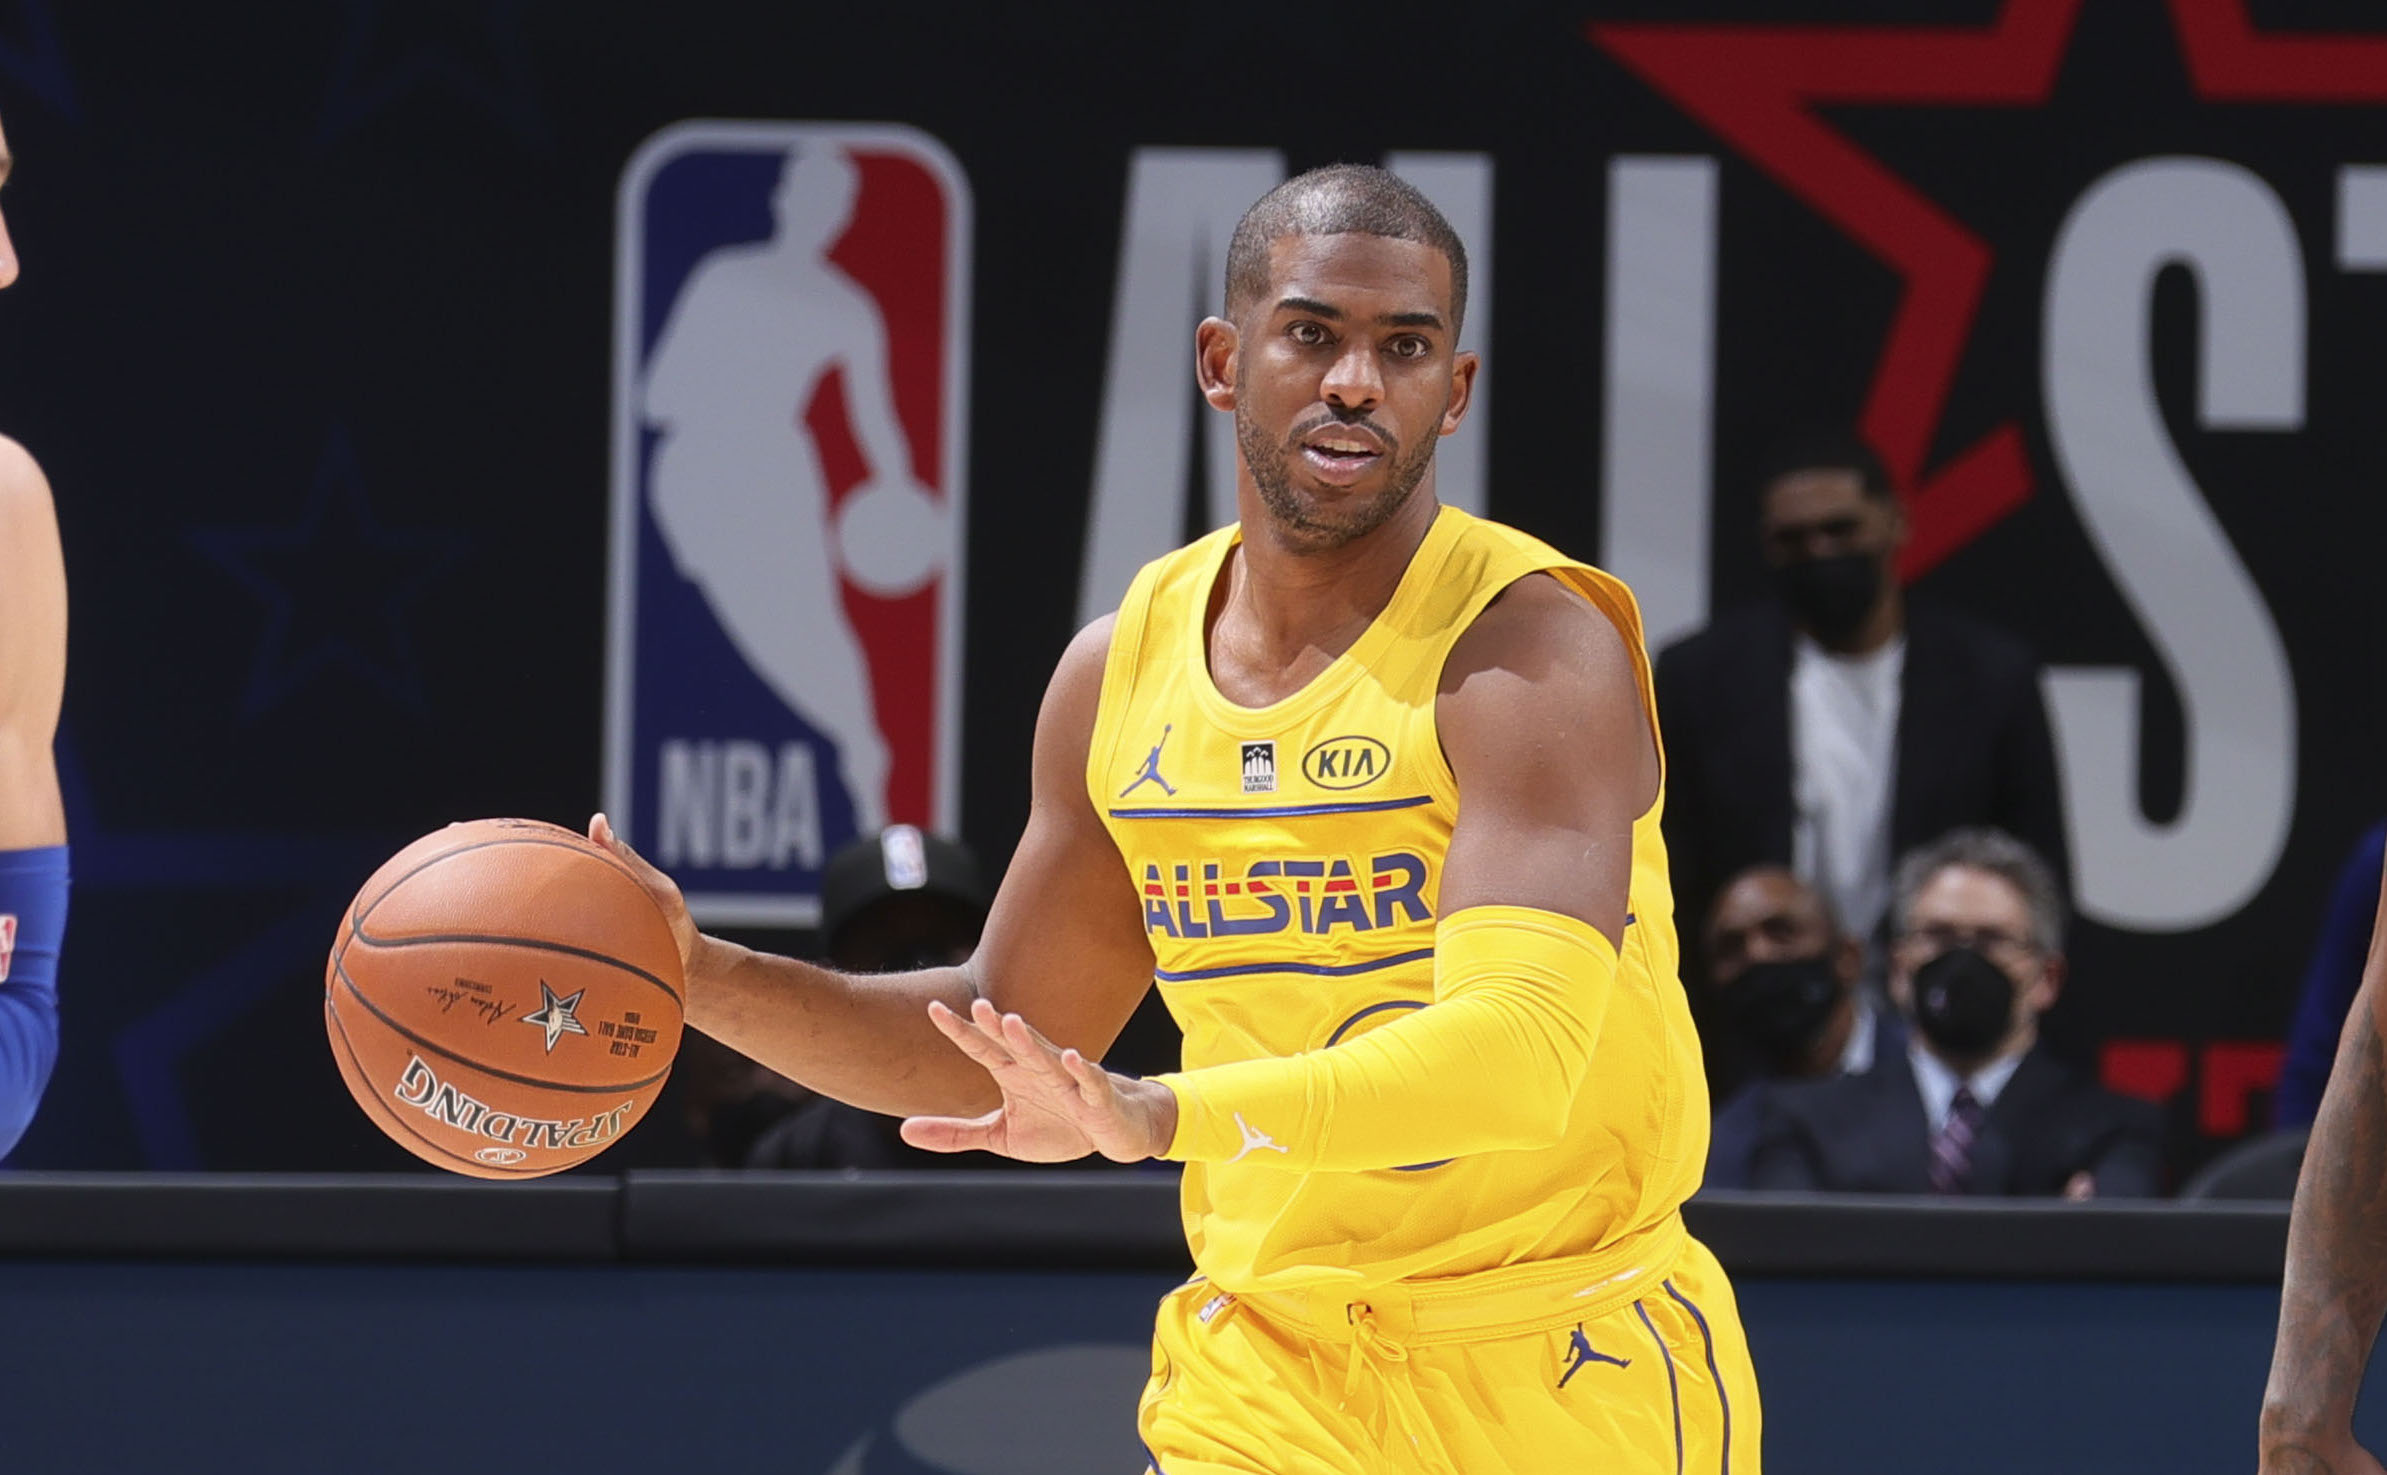 Chris Paul passes Magic Johnson for career All-Star Game assists record